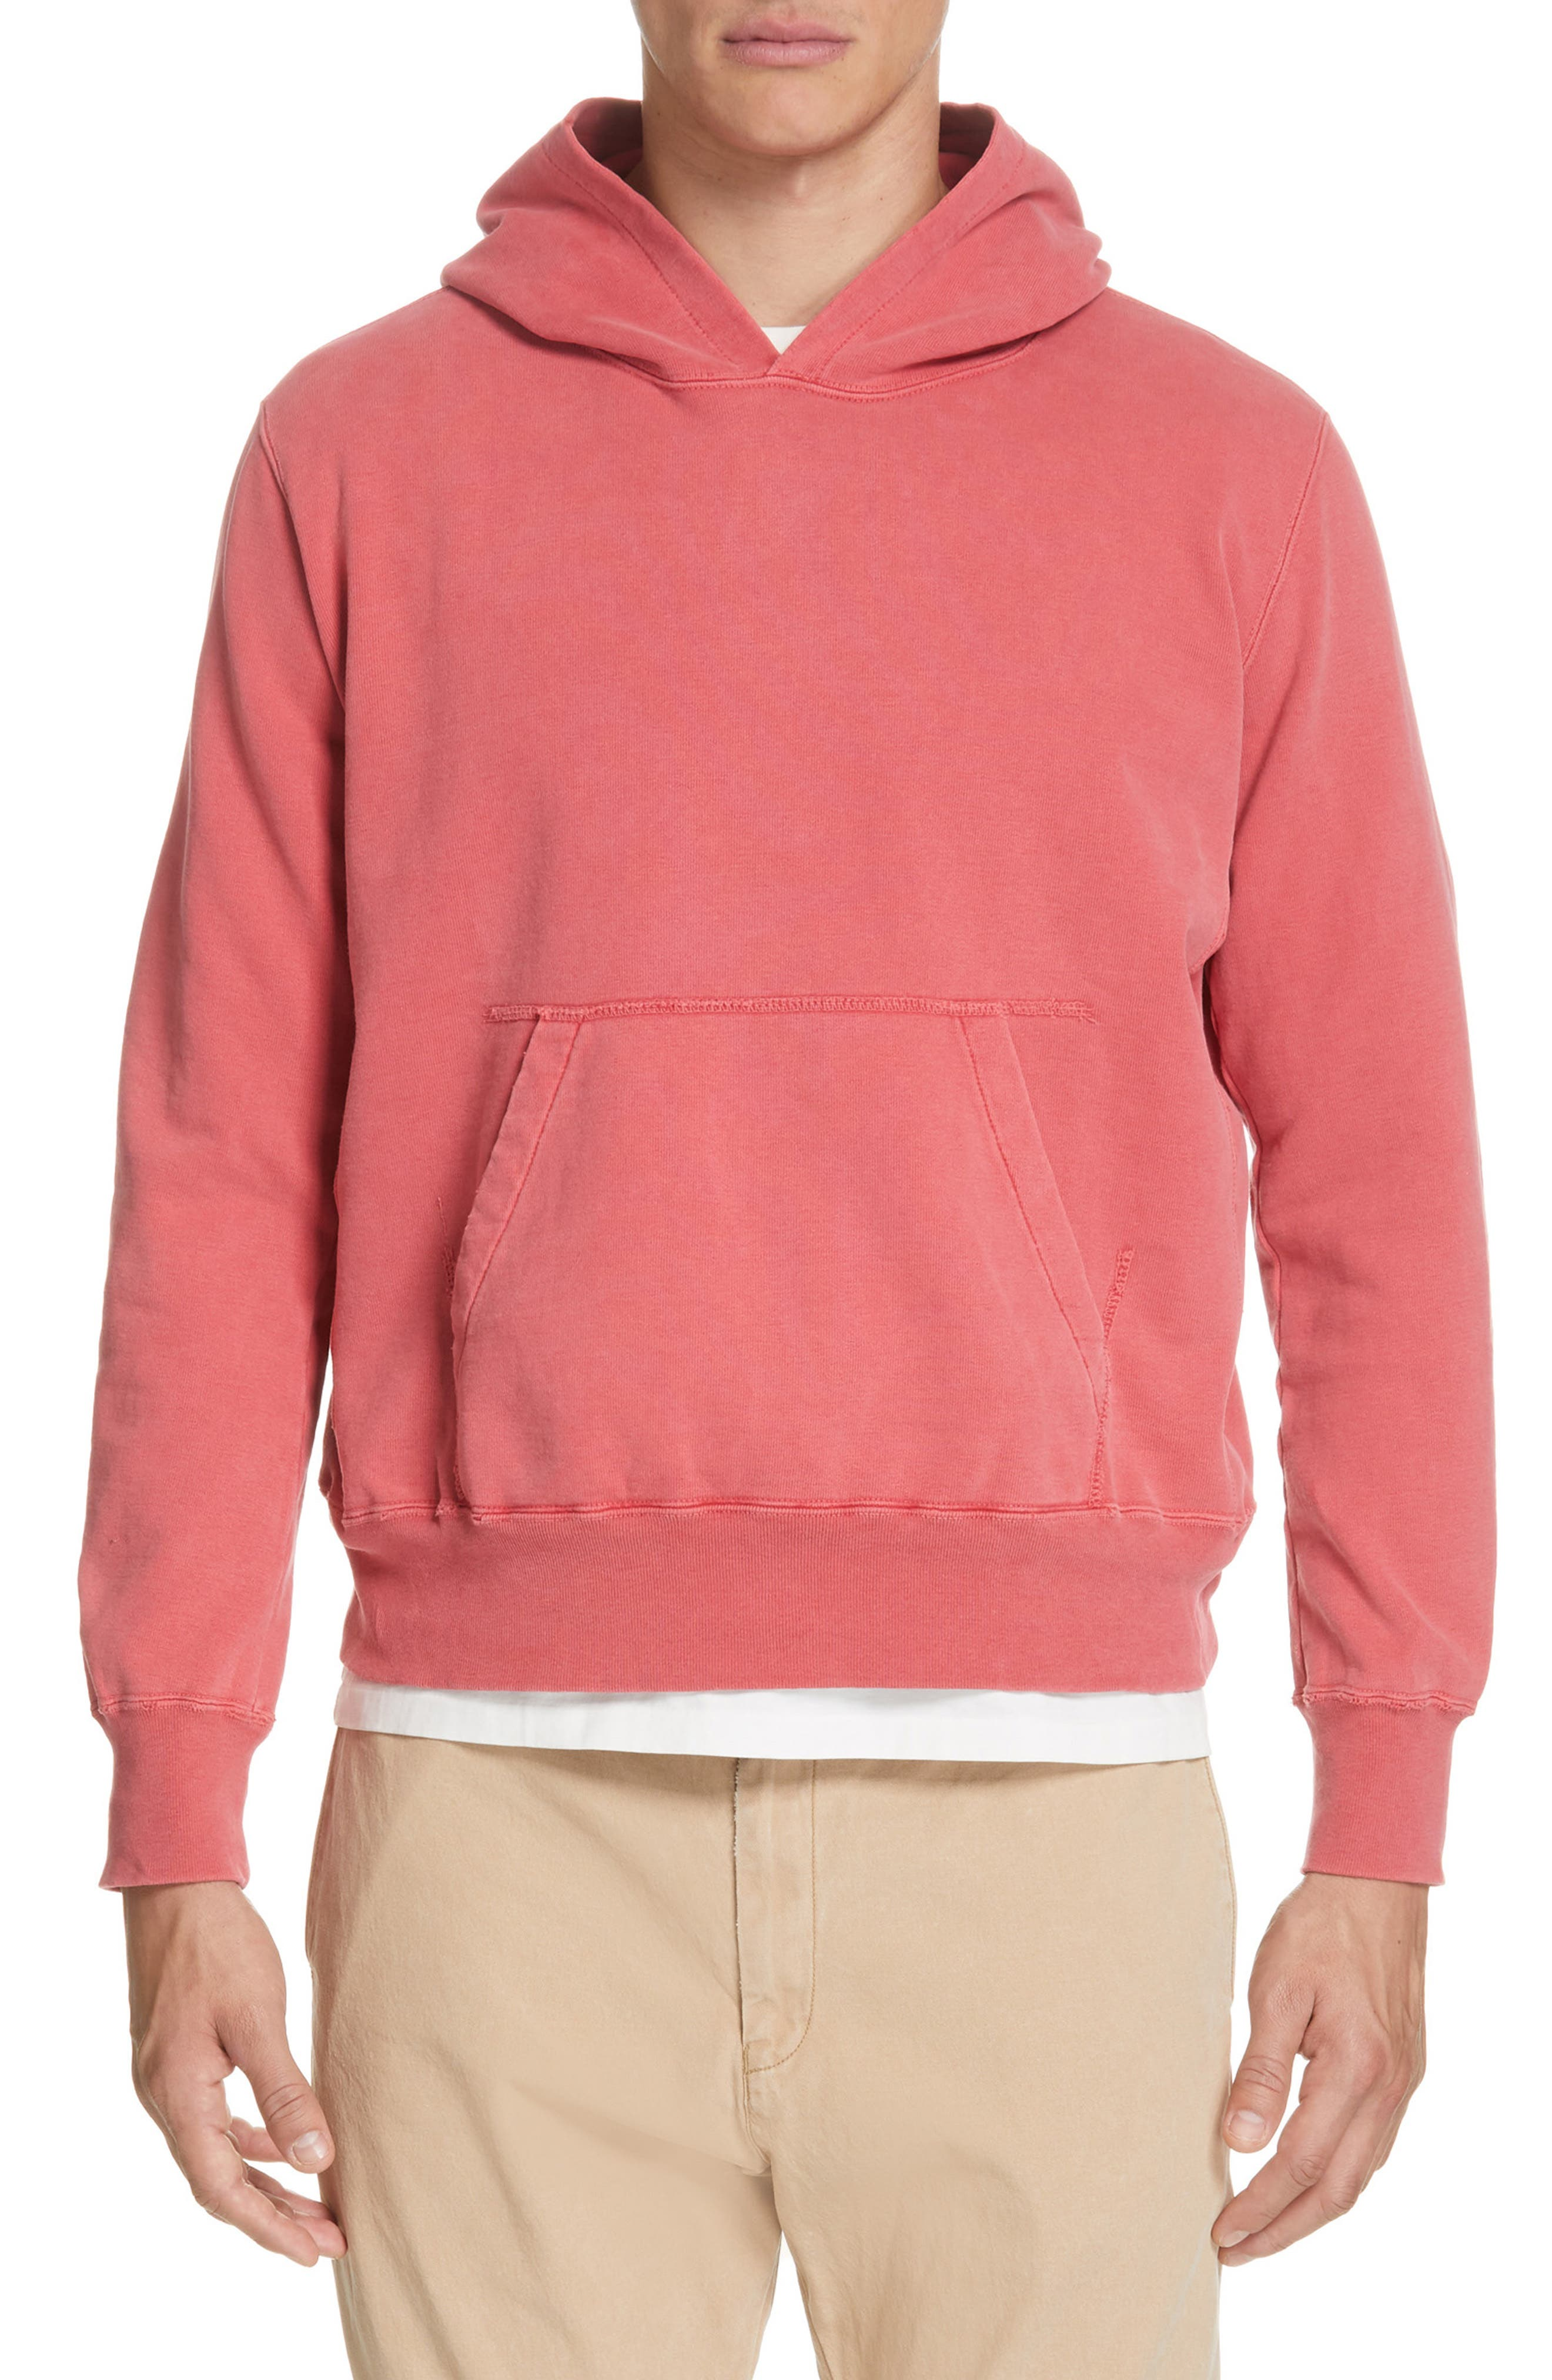 REMI RELIEF Hoodie, Main, color, 600